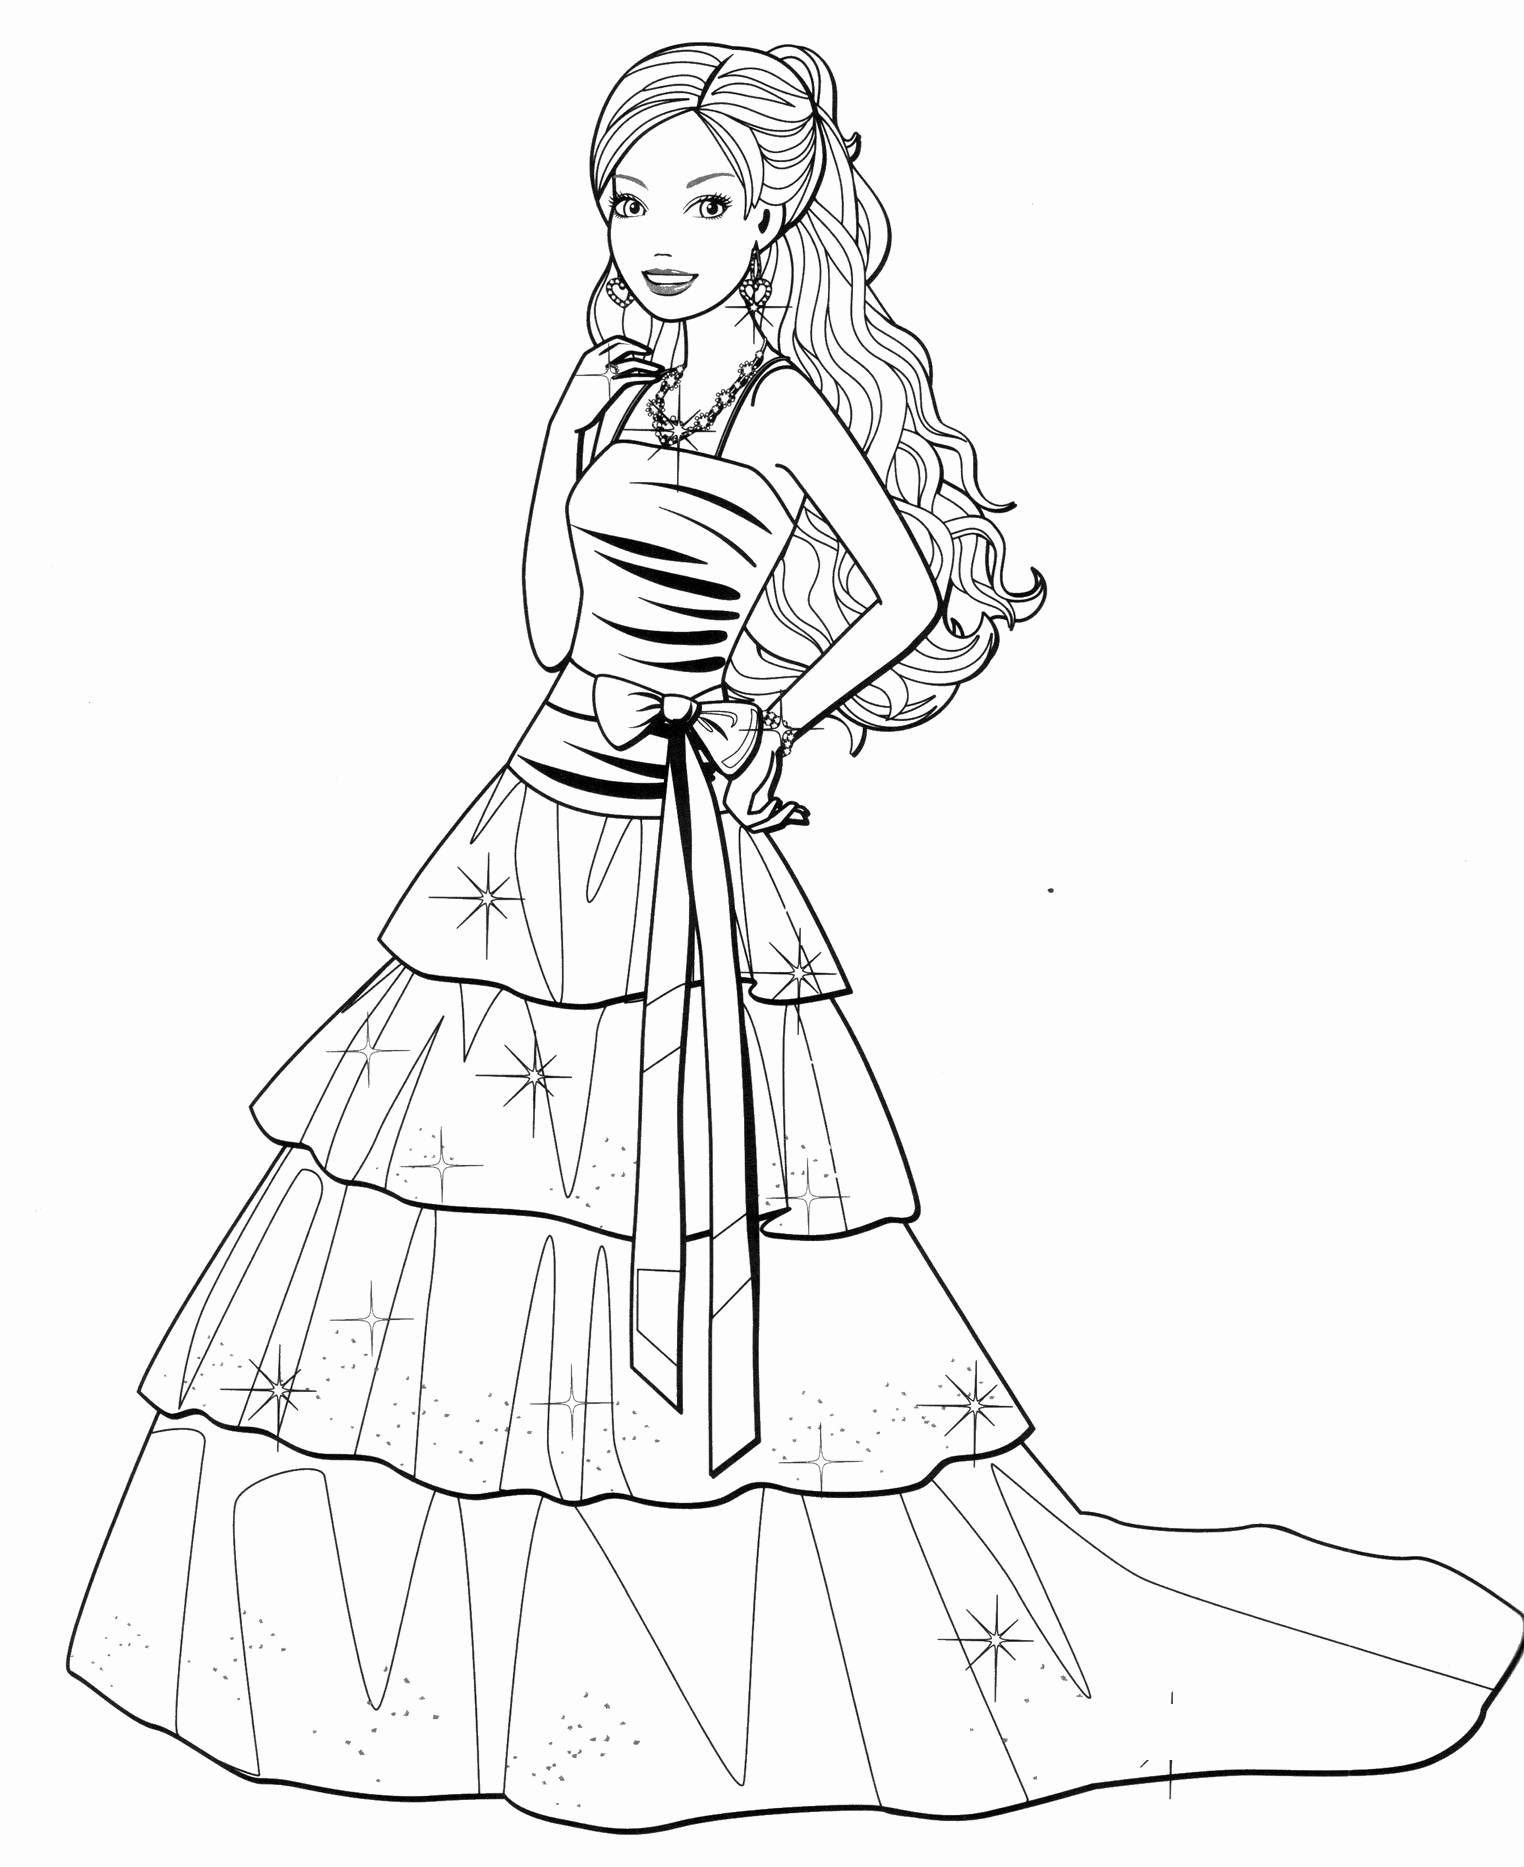 Dress Coloring Pages For Girls at GetDrawings | Free download